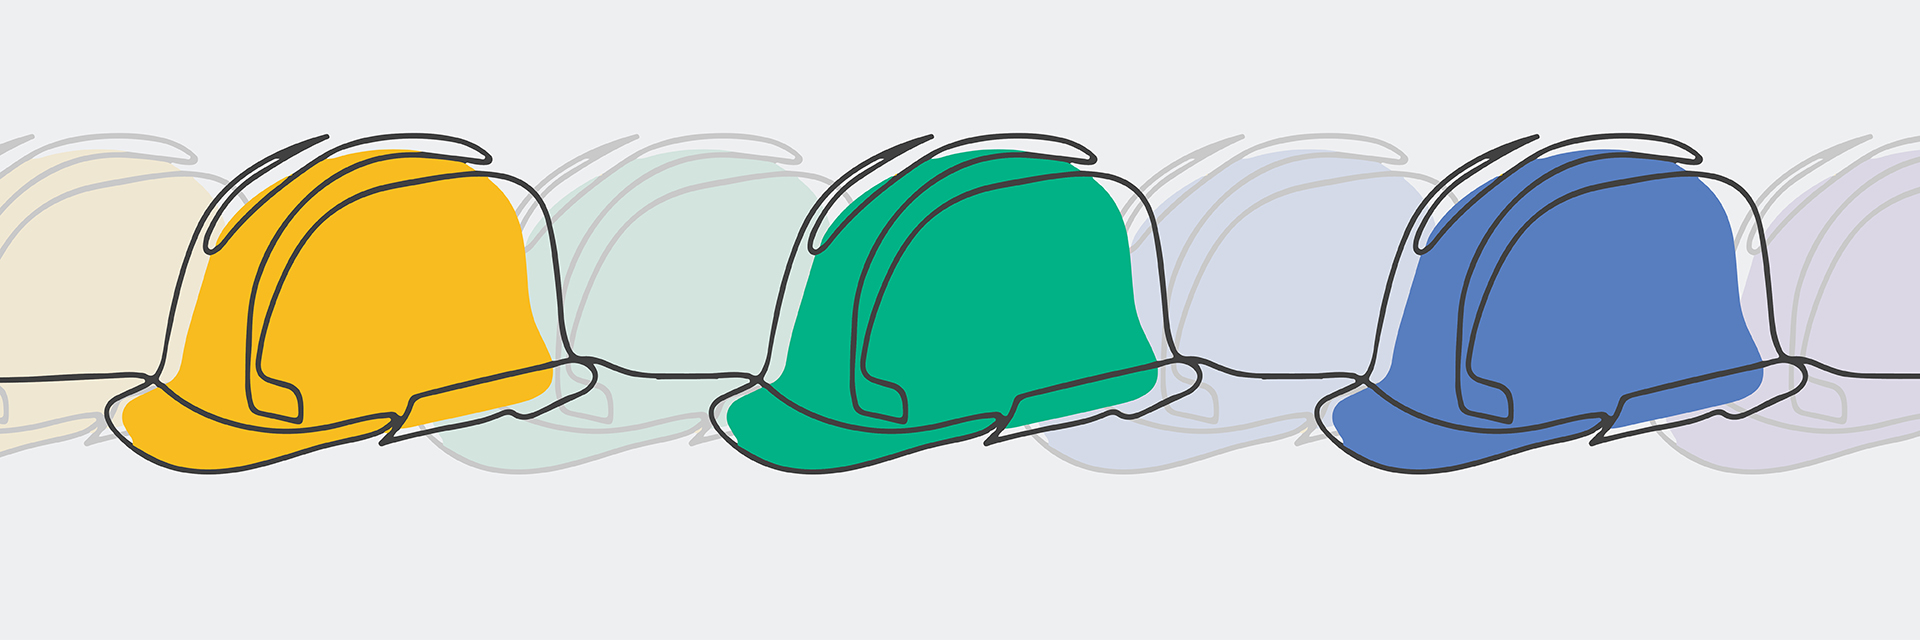 Graphic illustration three hardhats in various colors.